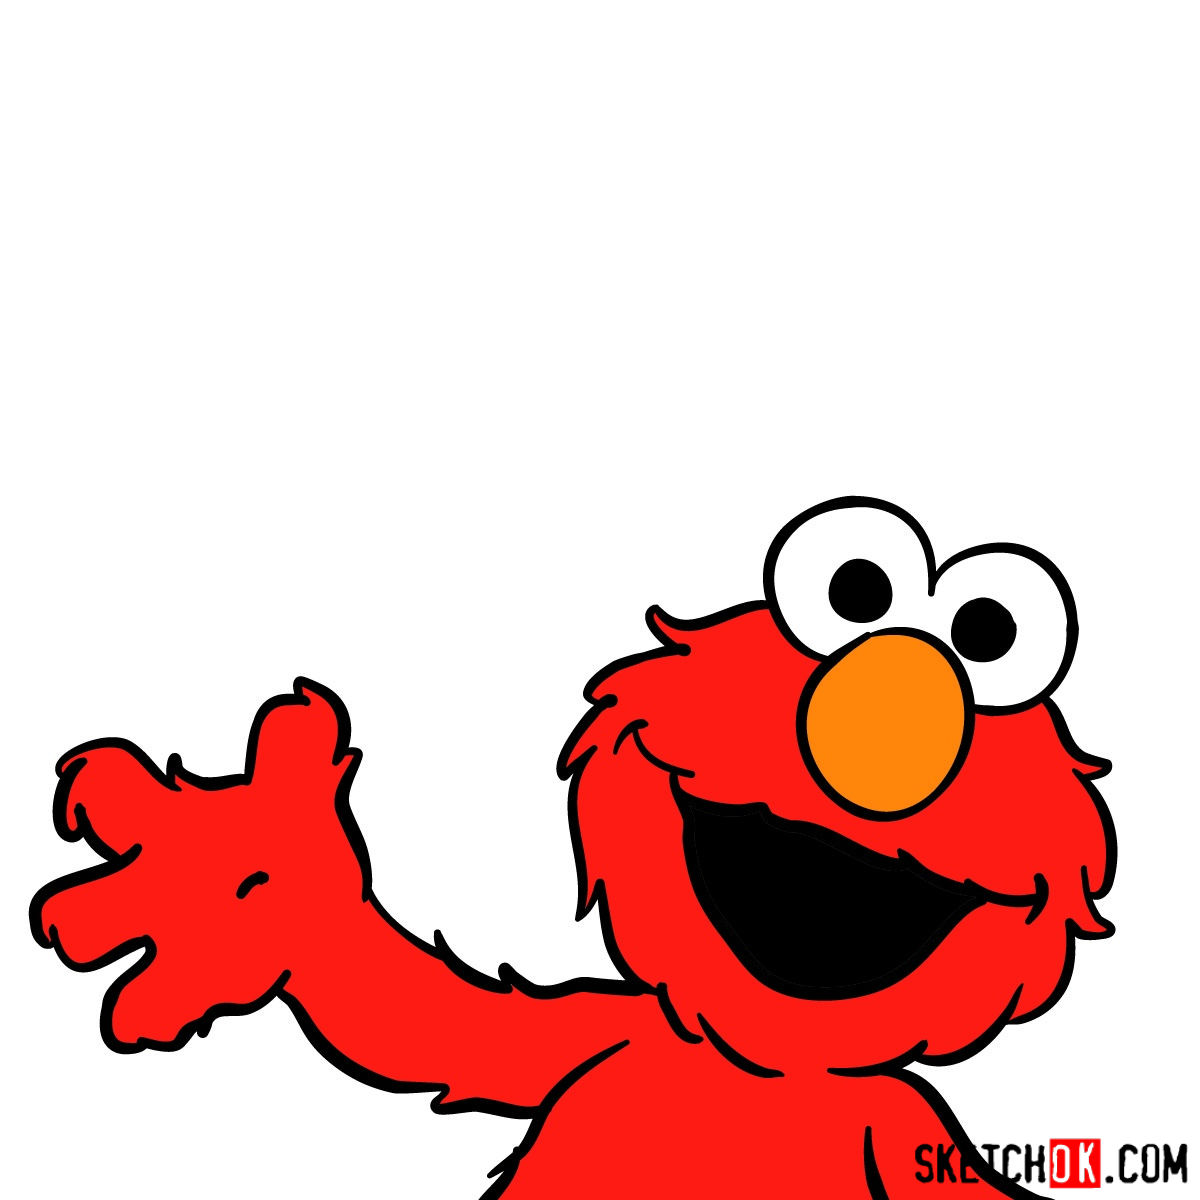 How to draw the. Elmo clipart drawing